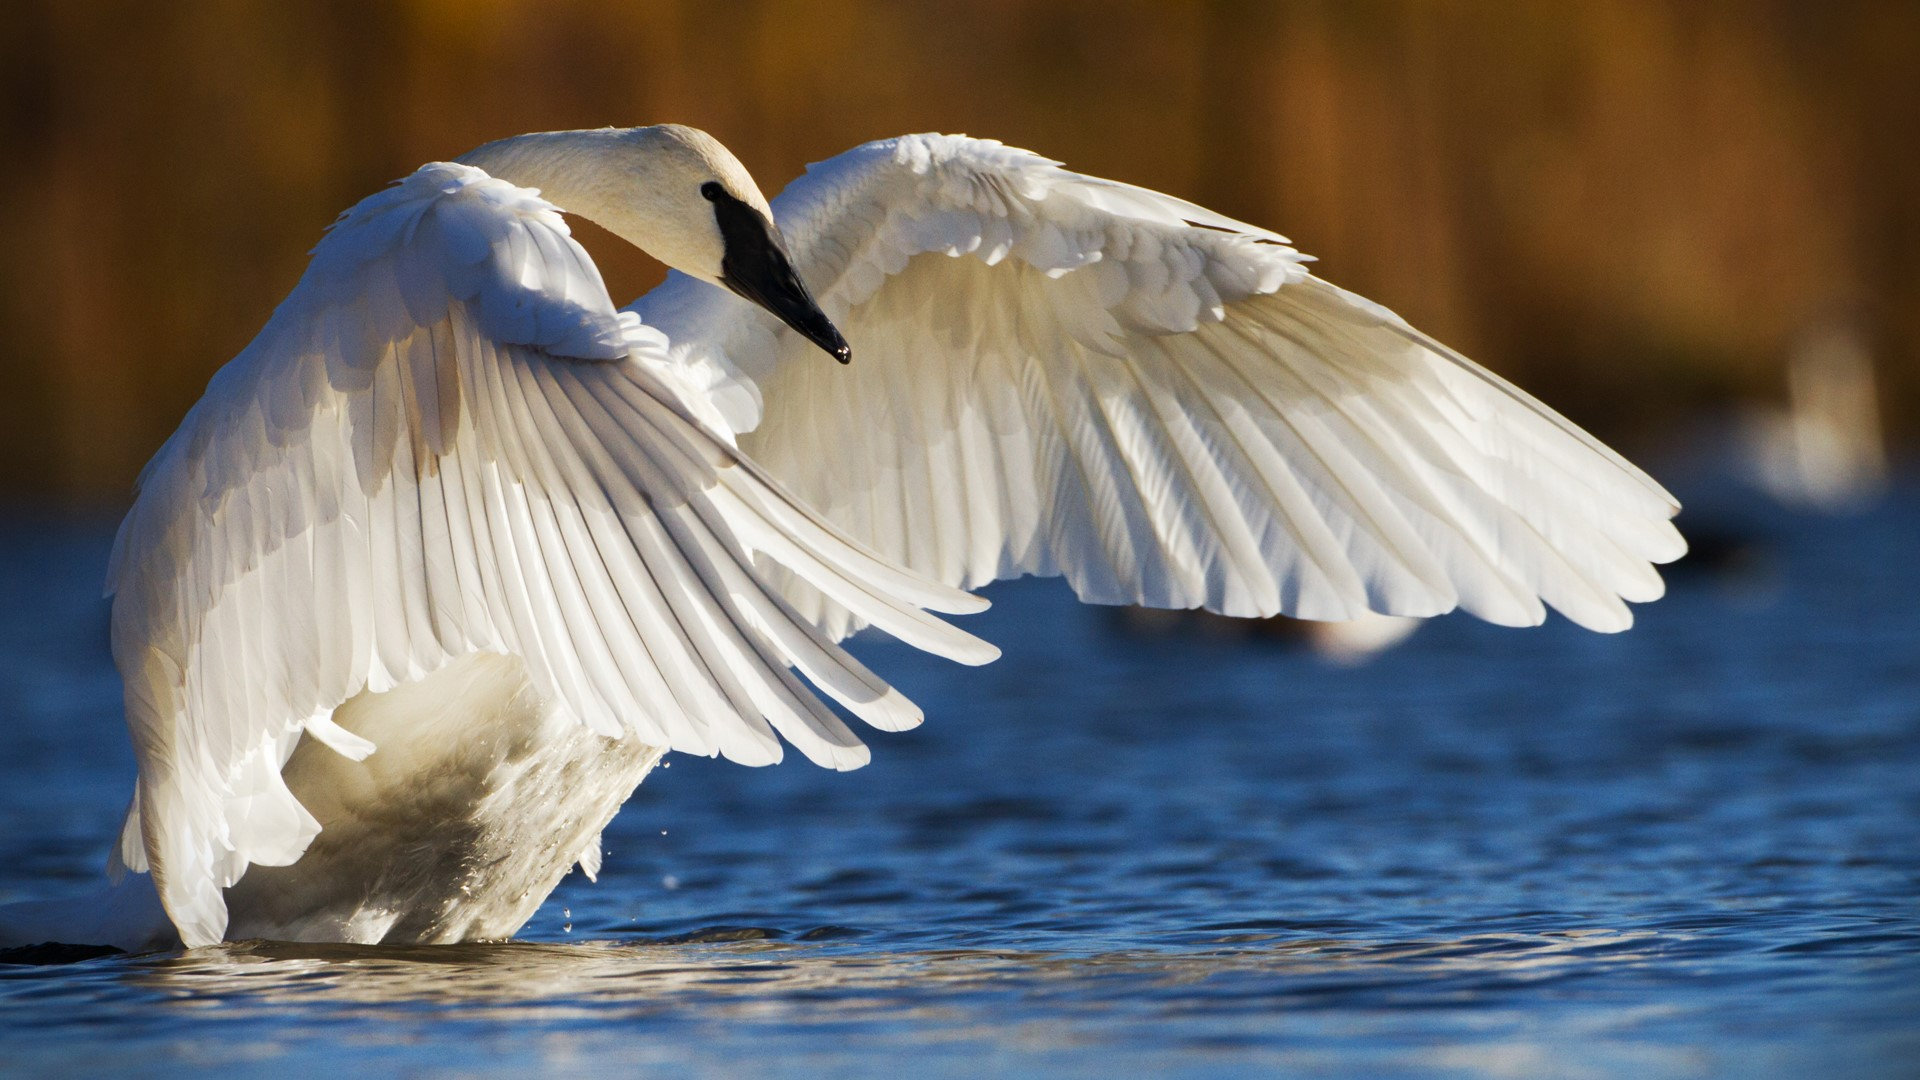 A swan spreading out its wings while standing above water.